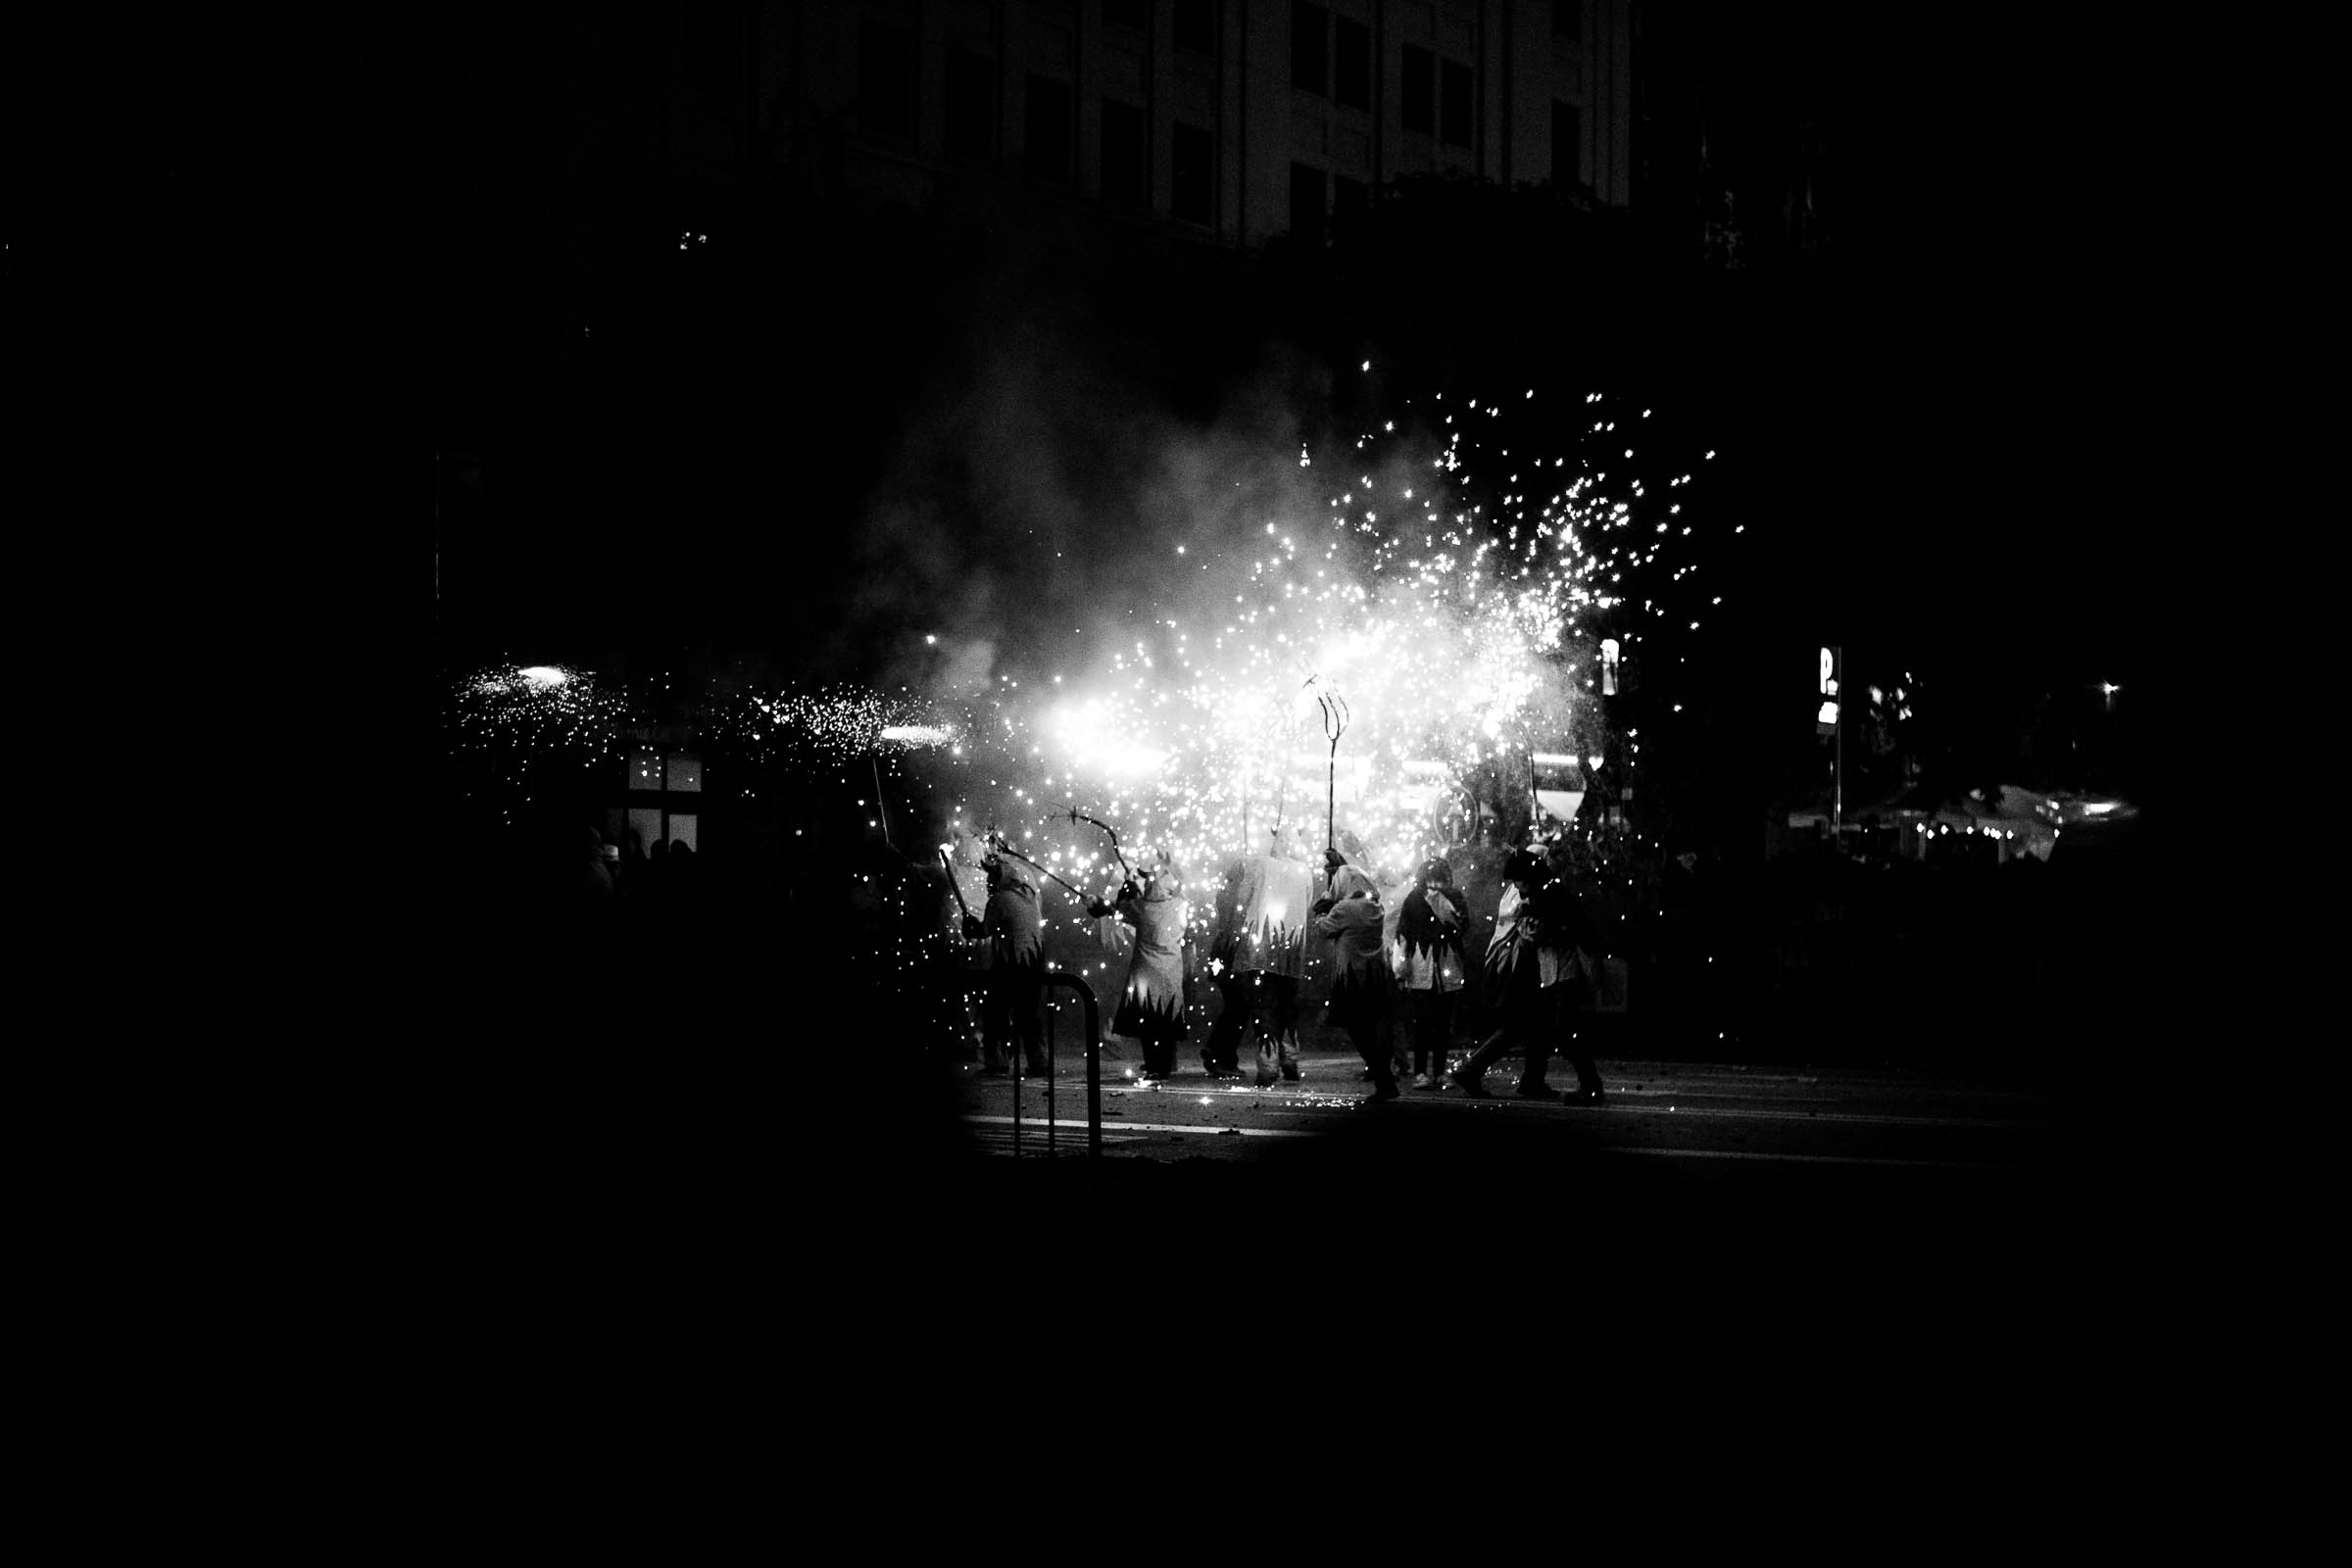 Chacon+Images_Correfocs_Web-22.jpg